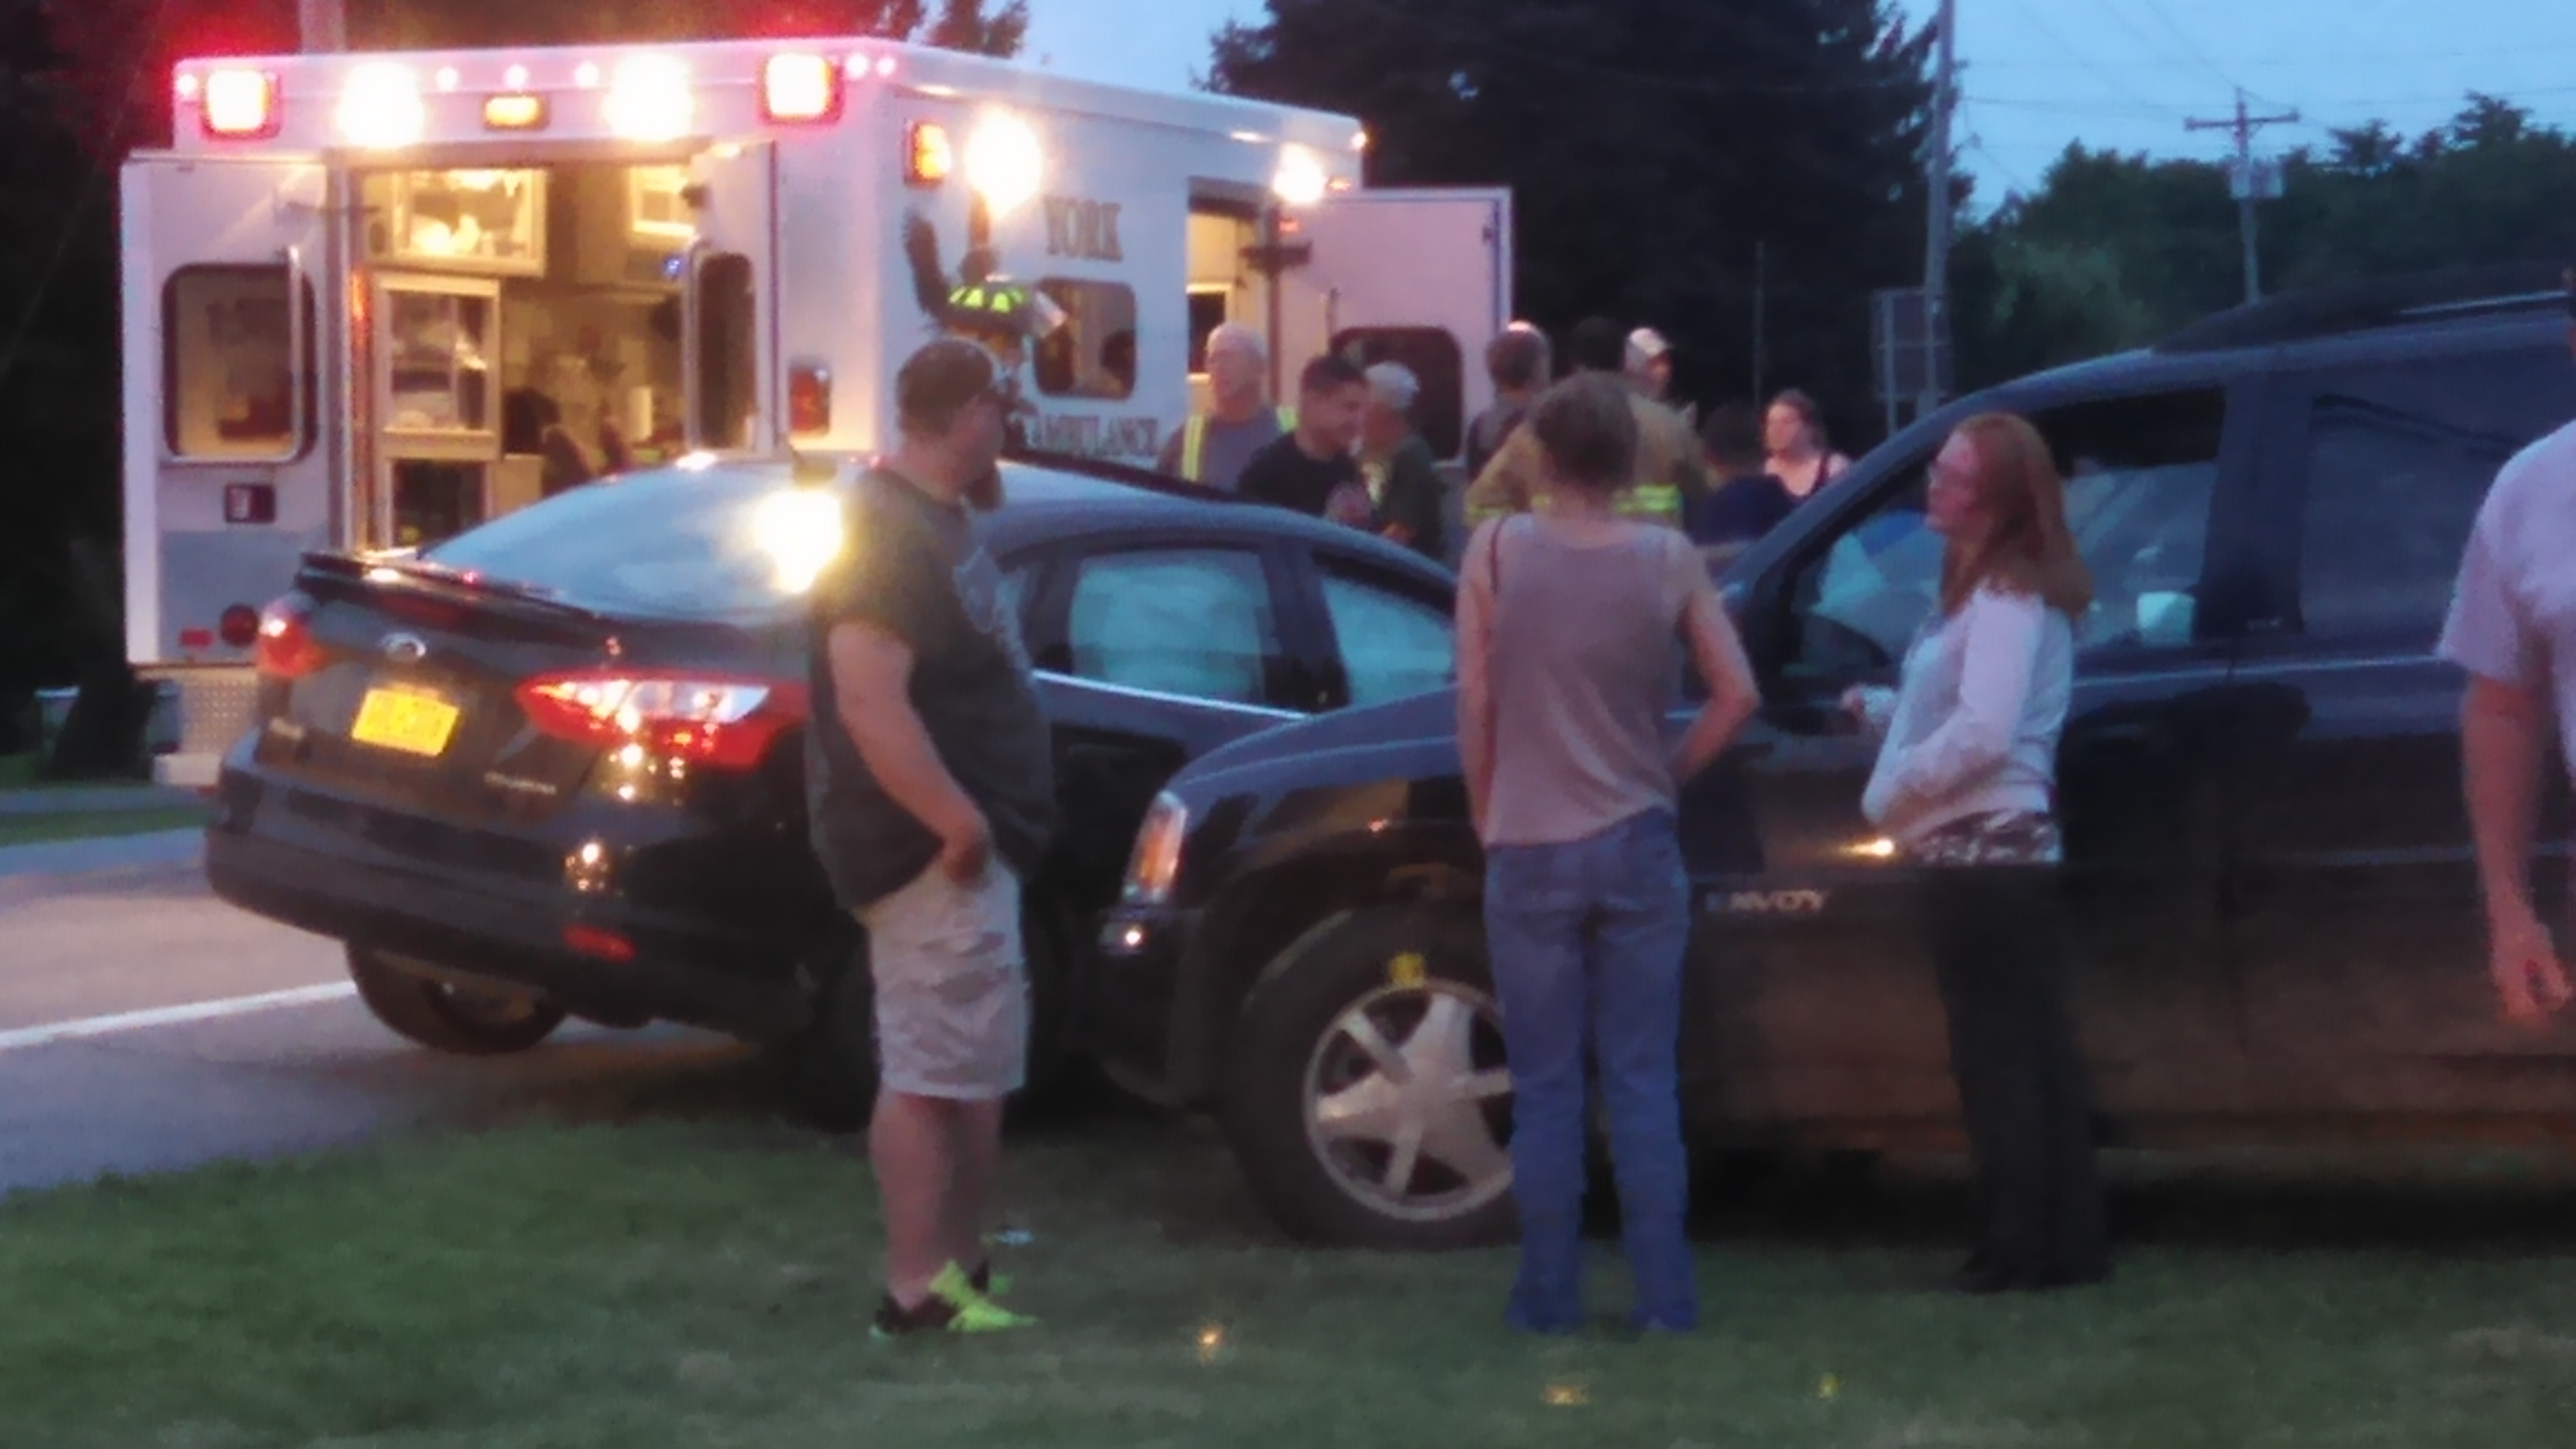 UPDATE: Accident Near York School Property